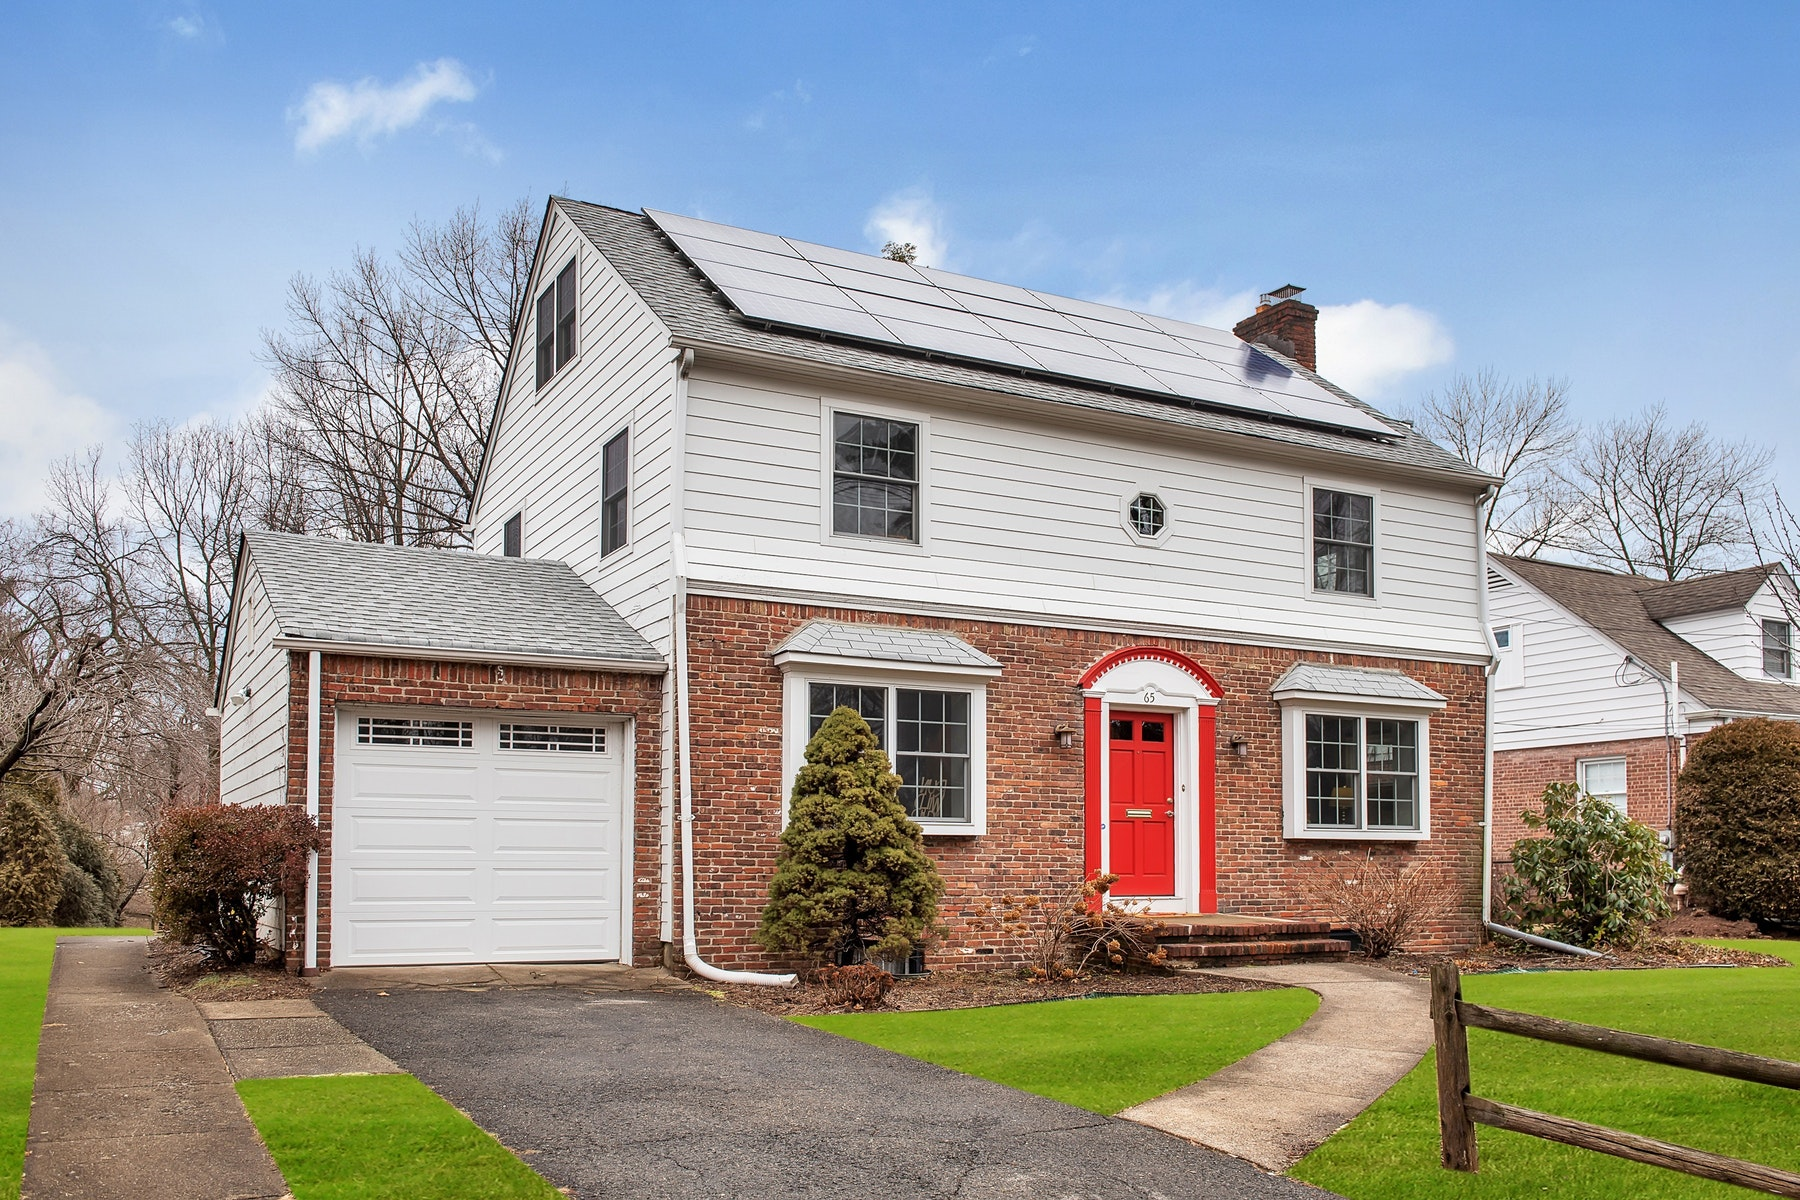 Single Family Home for Sale at Brookdale Park Colonial 65 Bellevue Avenue, Bloomfield, New Jersey 07003 United States